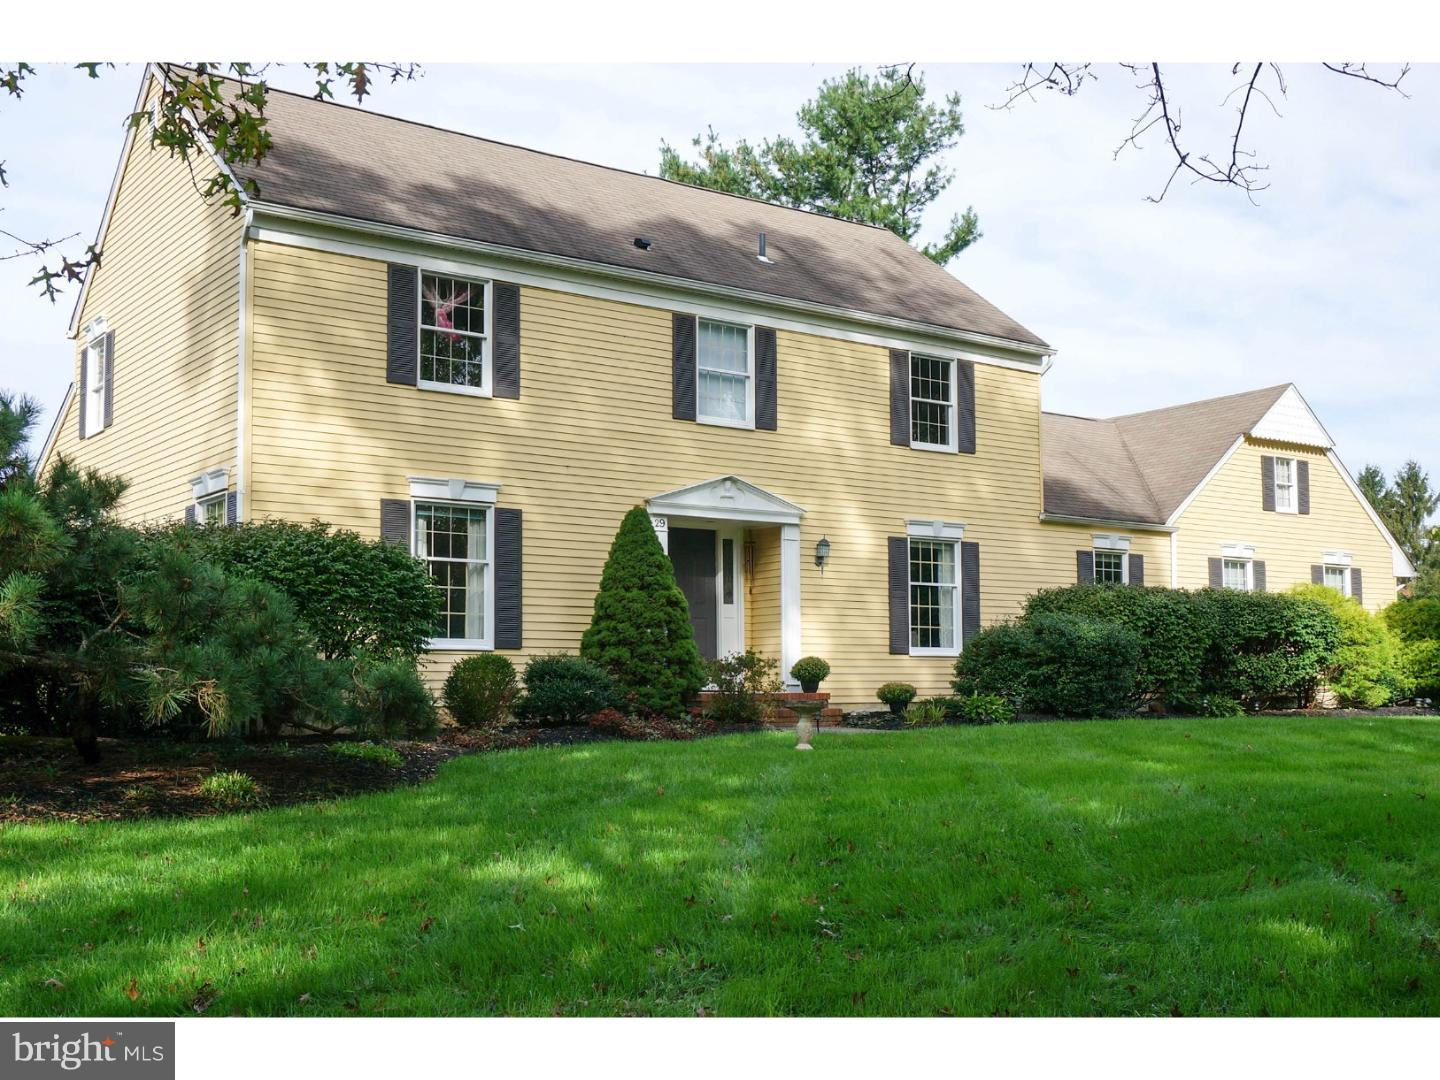 29 WASHINGTON DRIVE, CRANBURY, NJ 08512